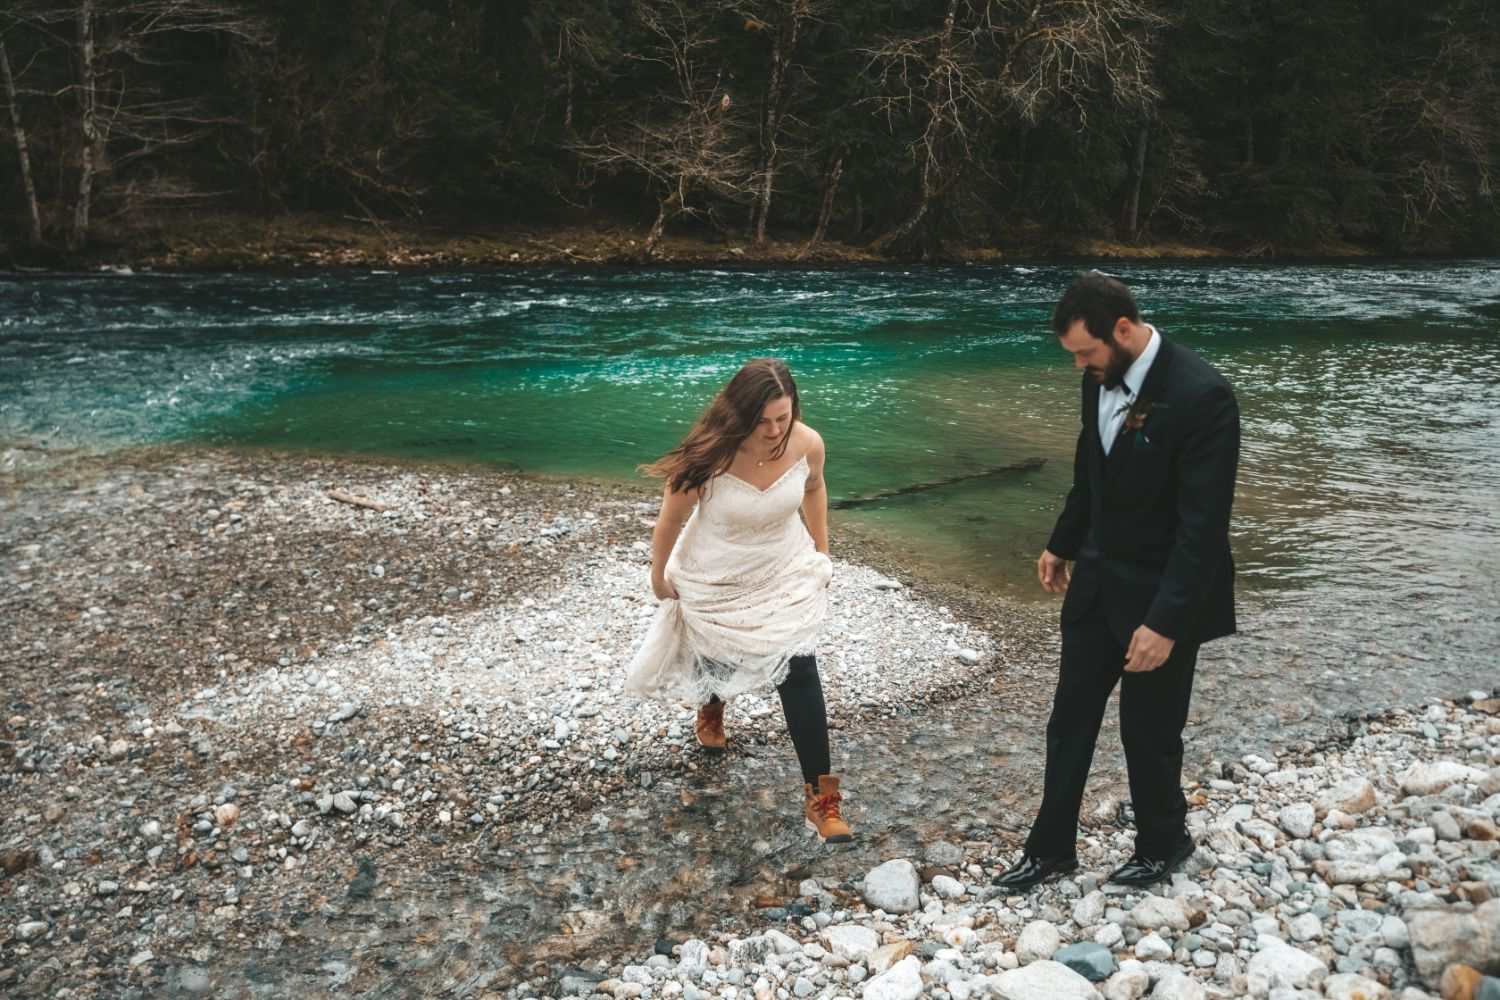 bride-jumps-across-river-hiking-boots-winter-elopement